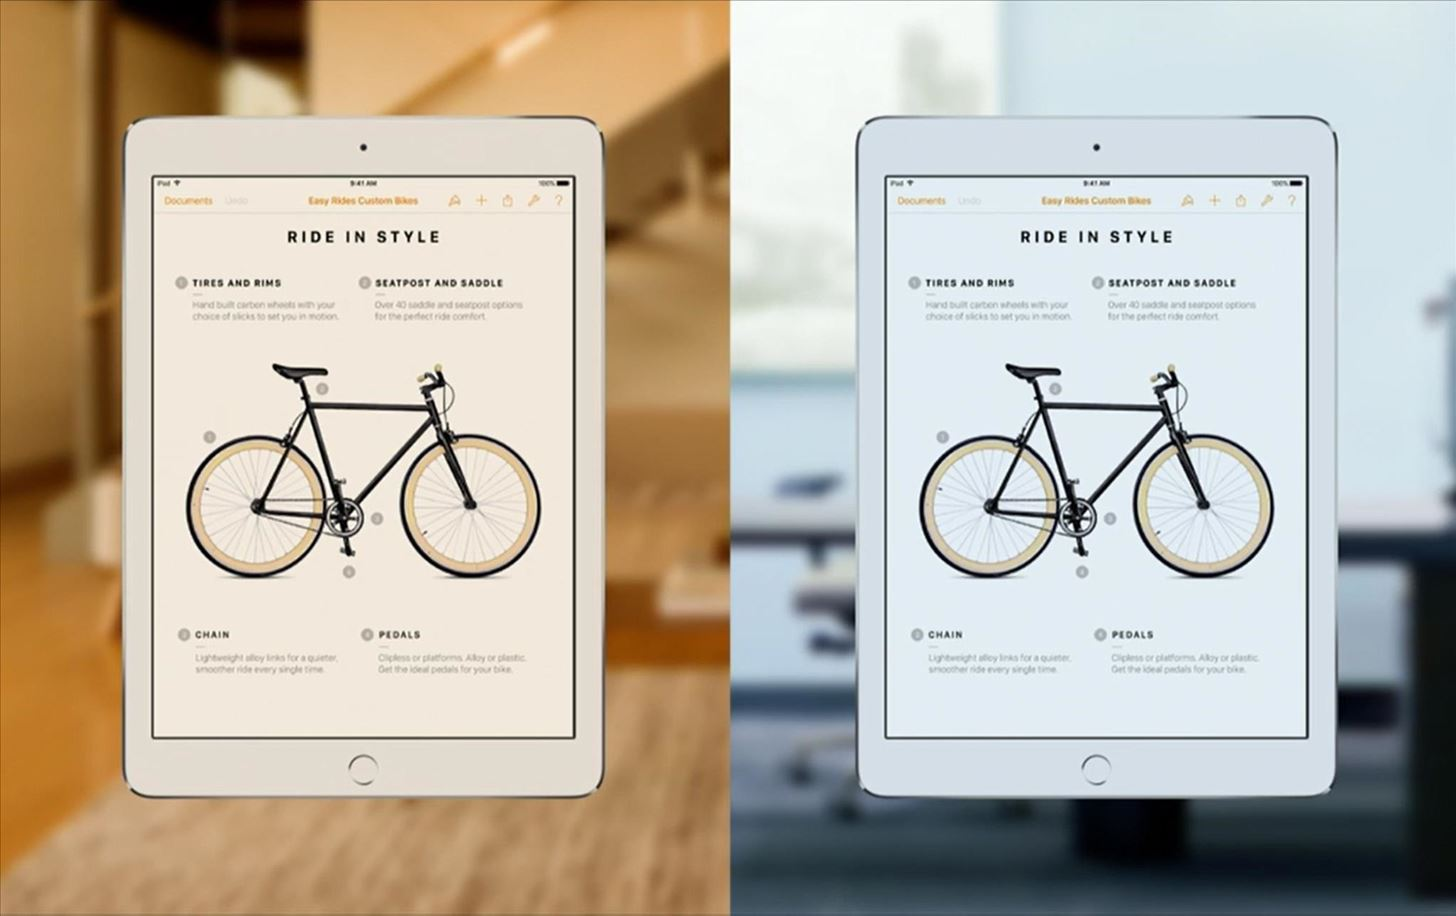 Apple Announces New iPad Pro: 9.7-Inch Screen, Better Audio, & More